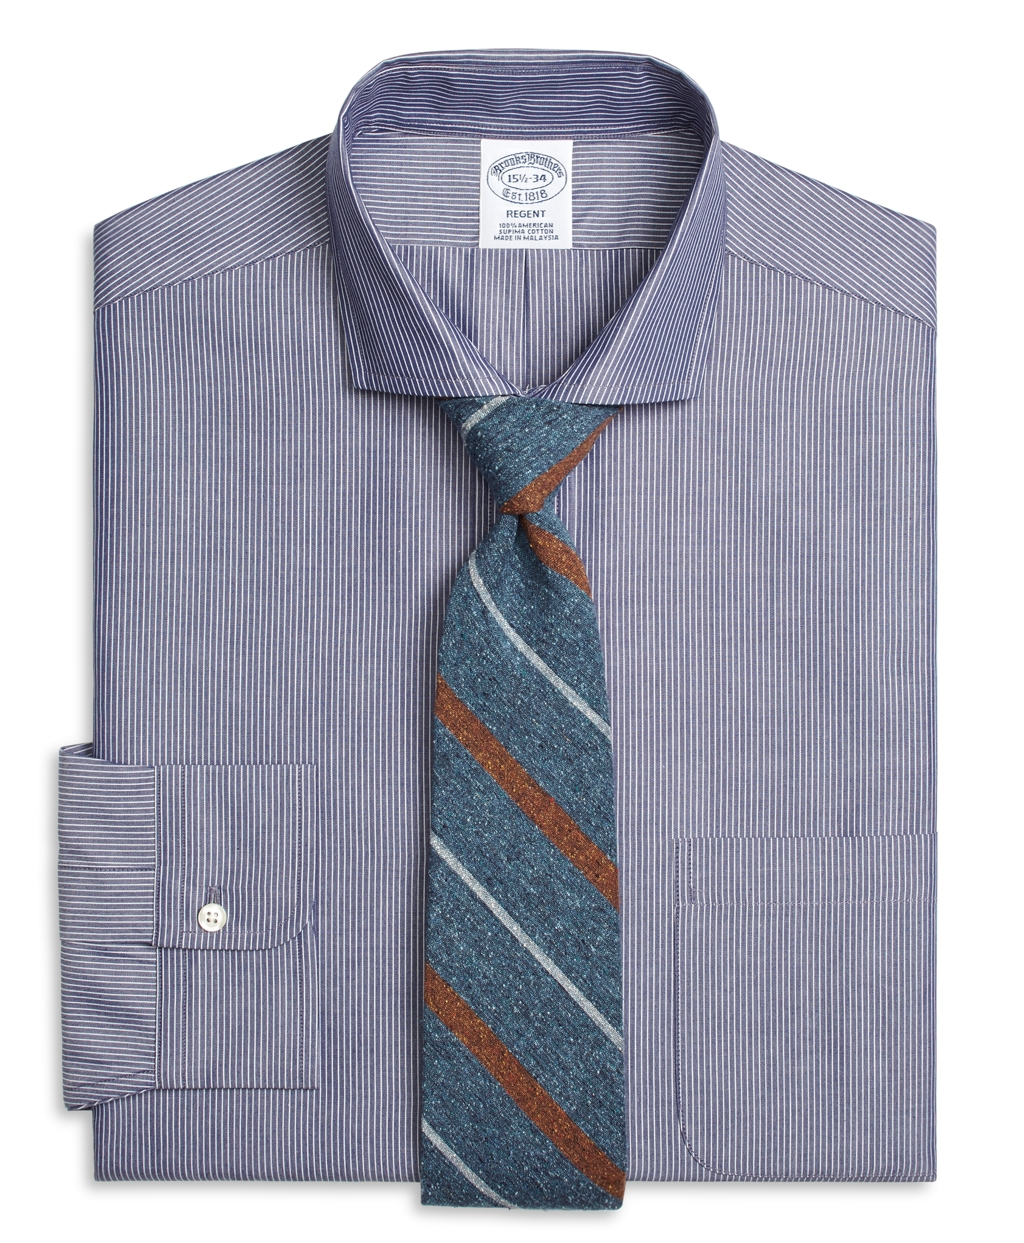 Lyst brooks brothers regent fit chambray pinstripe dress for Brooks brothers dress shirt fit